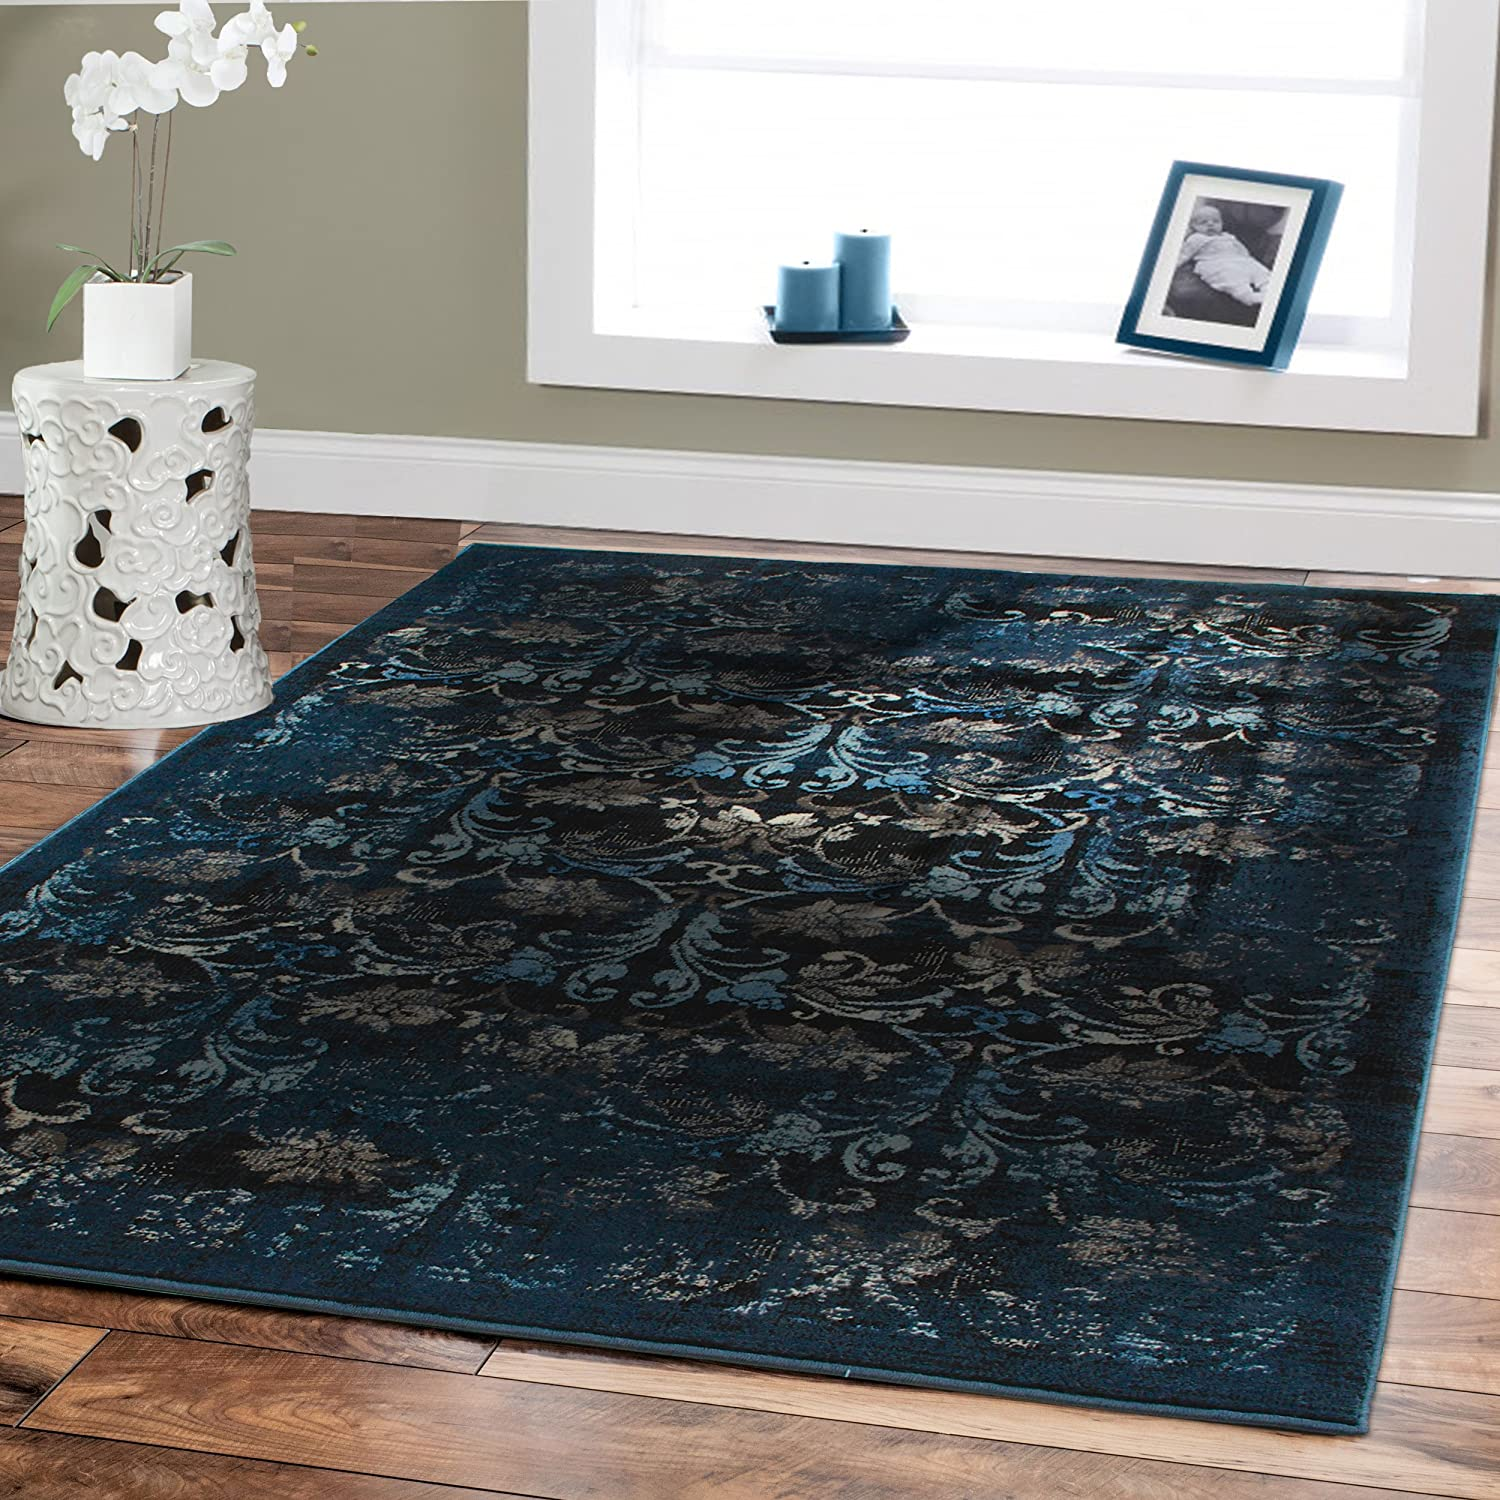 ella dark chip beab joanna magnolia ellaej products blue rose rug rugs gaines